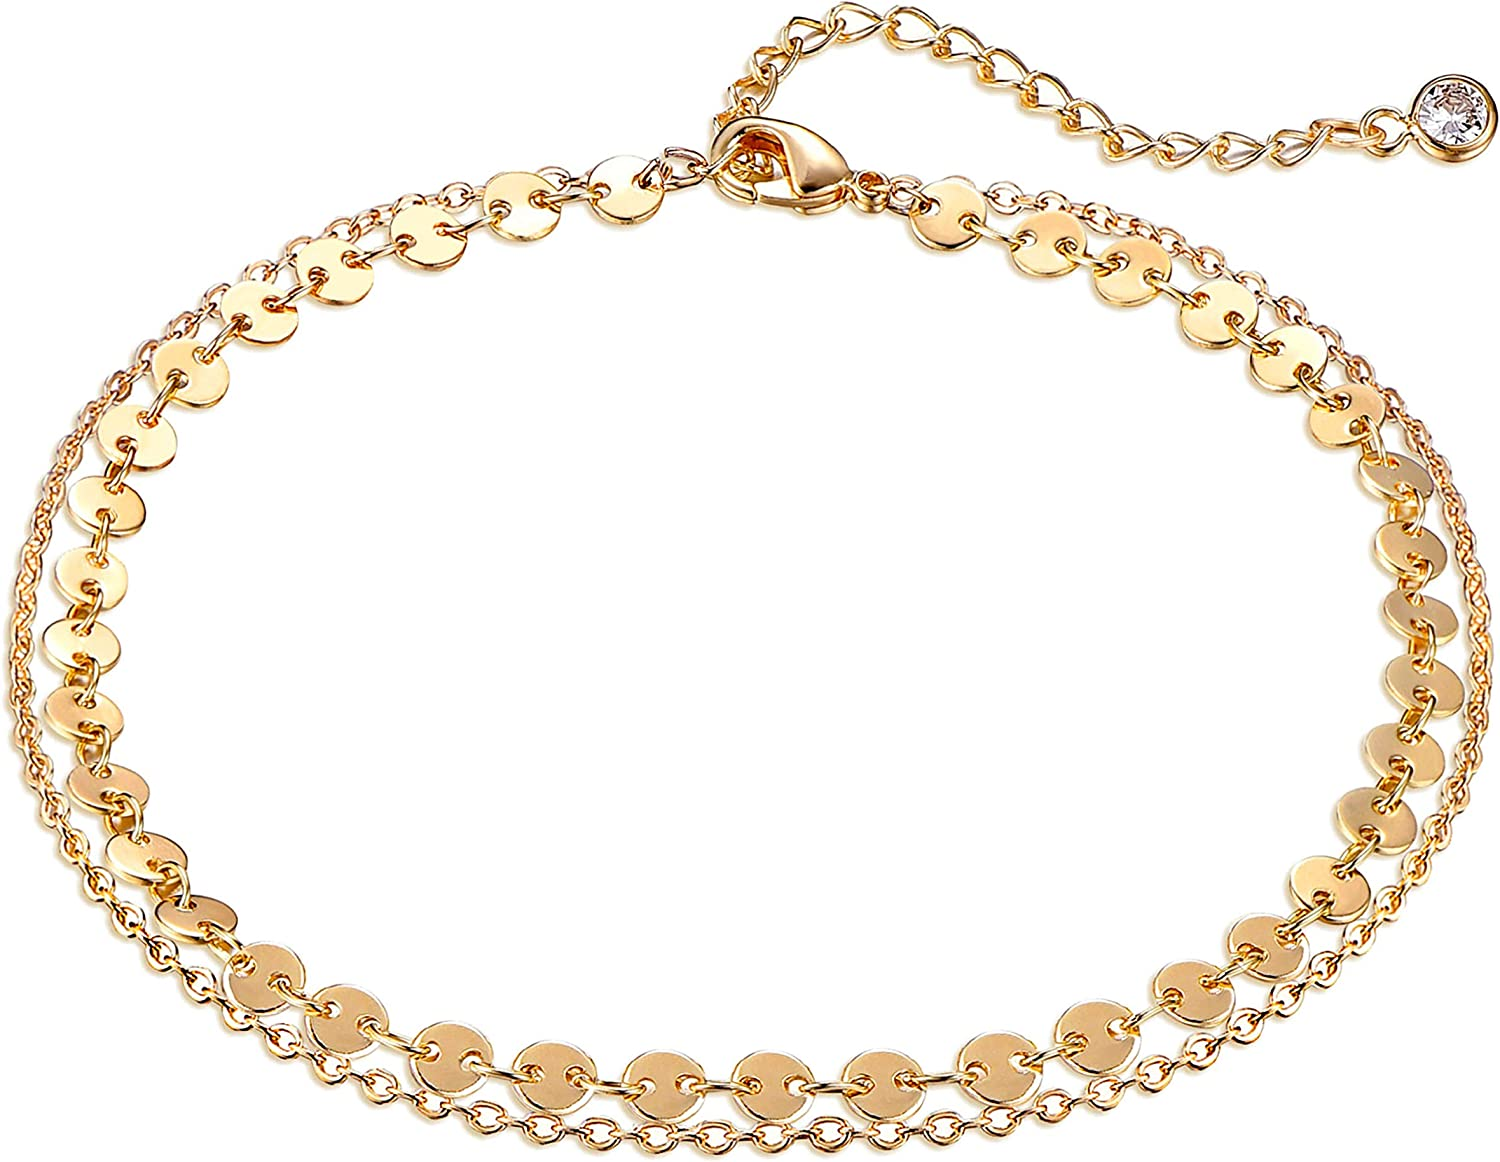 Dremmy Studios Simple Gold Chain Anklet,14k Gold/Silver Plated Dainty Summer Beach Anklets for Women